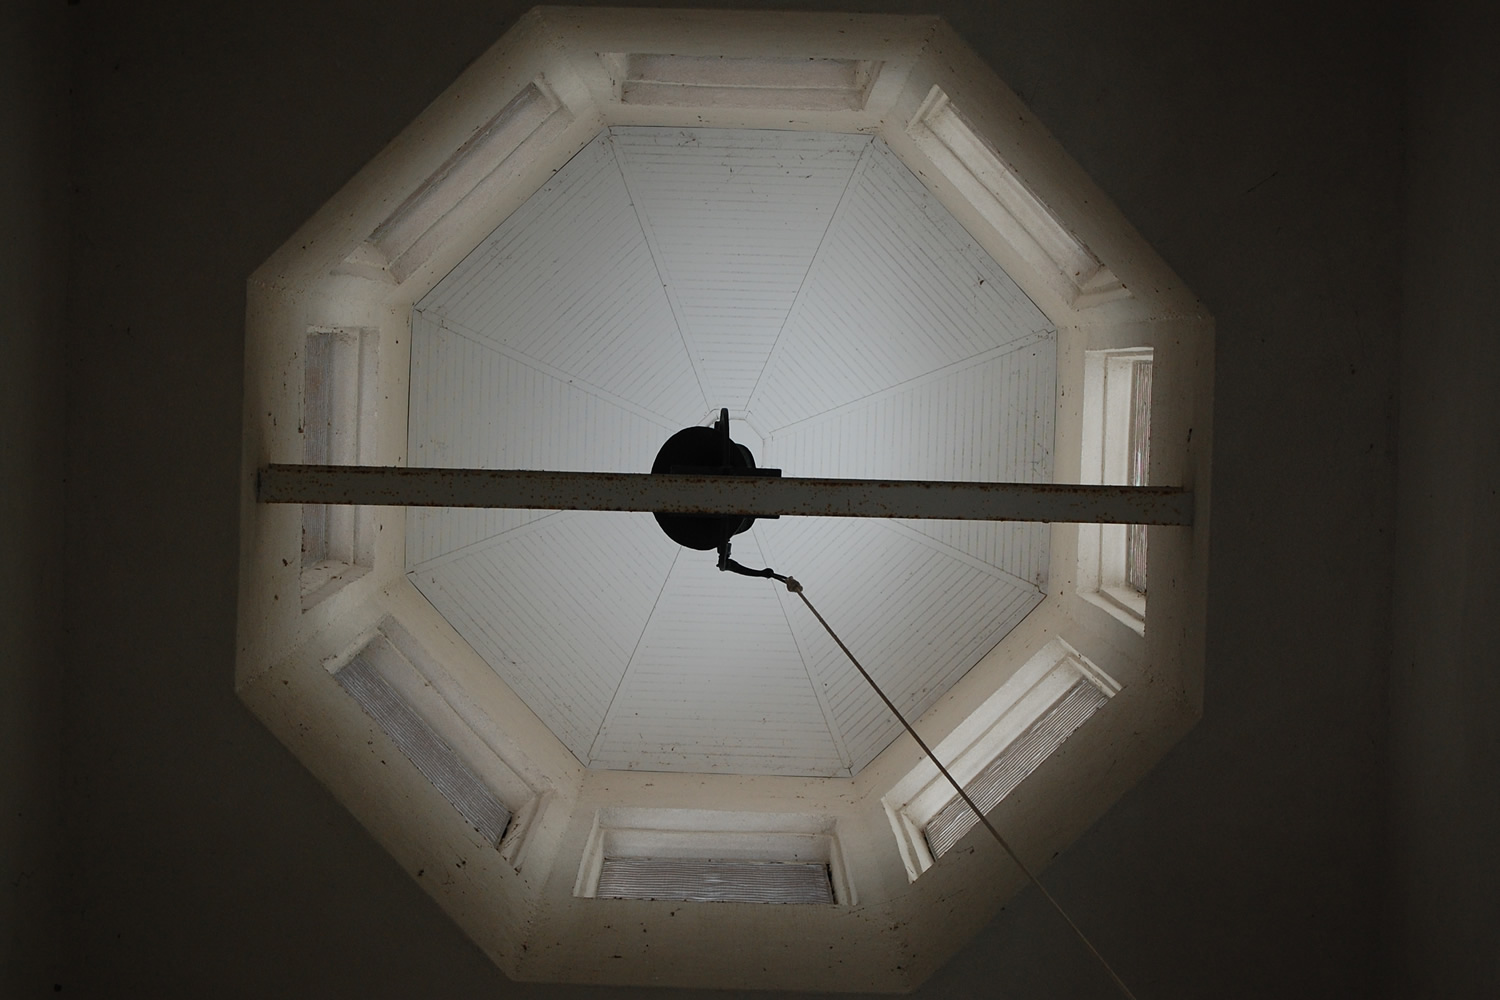 Looking up into the Bell Tower